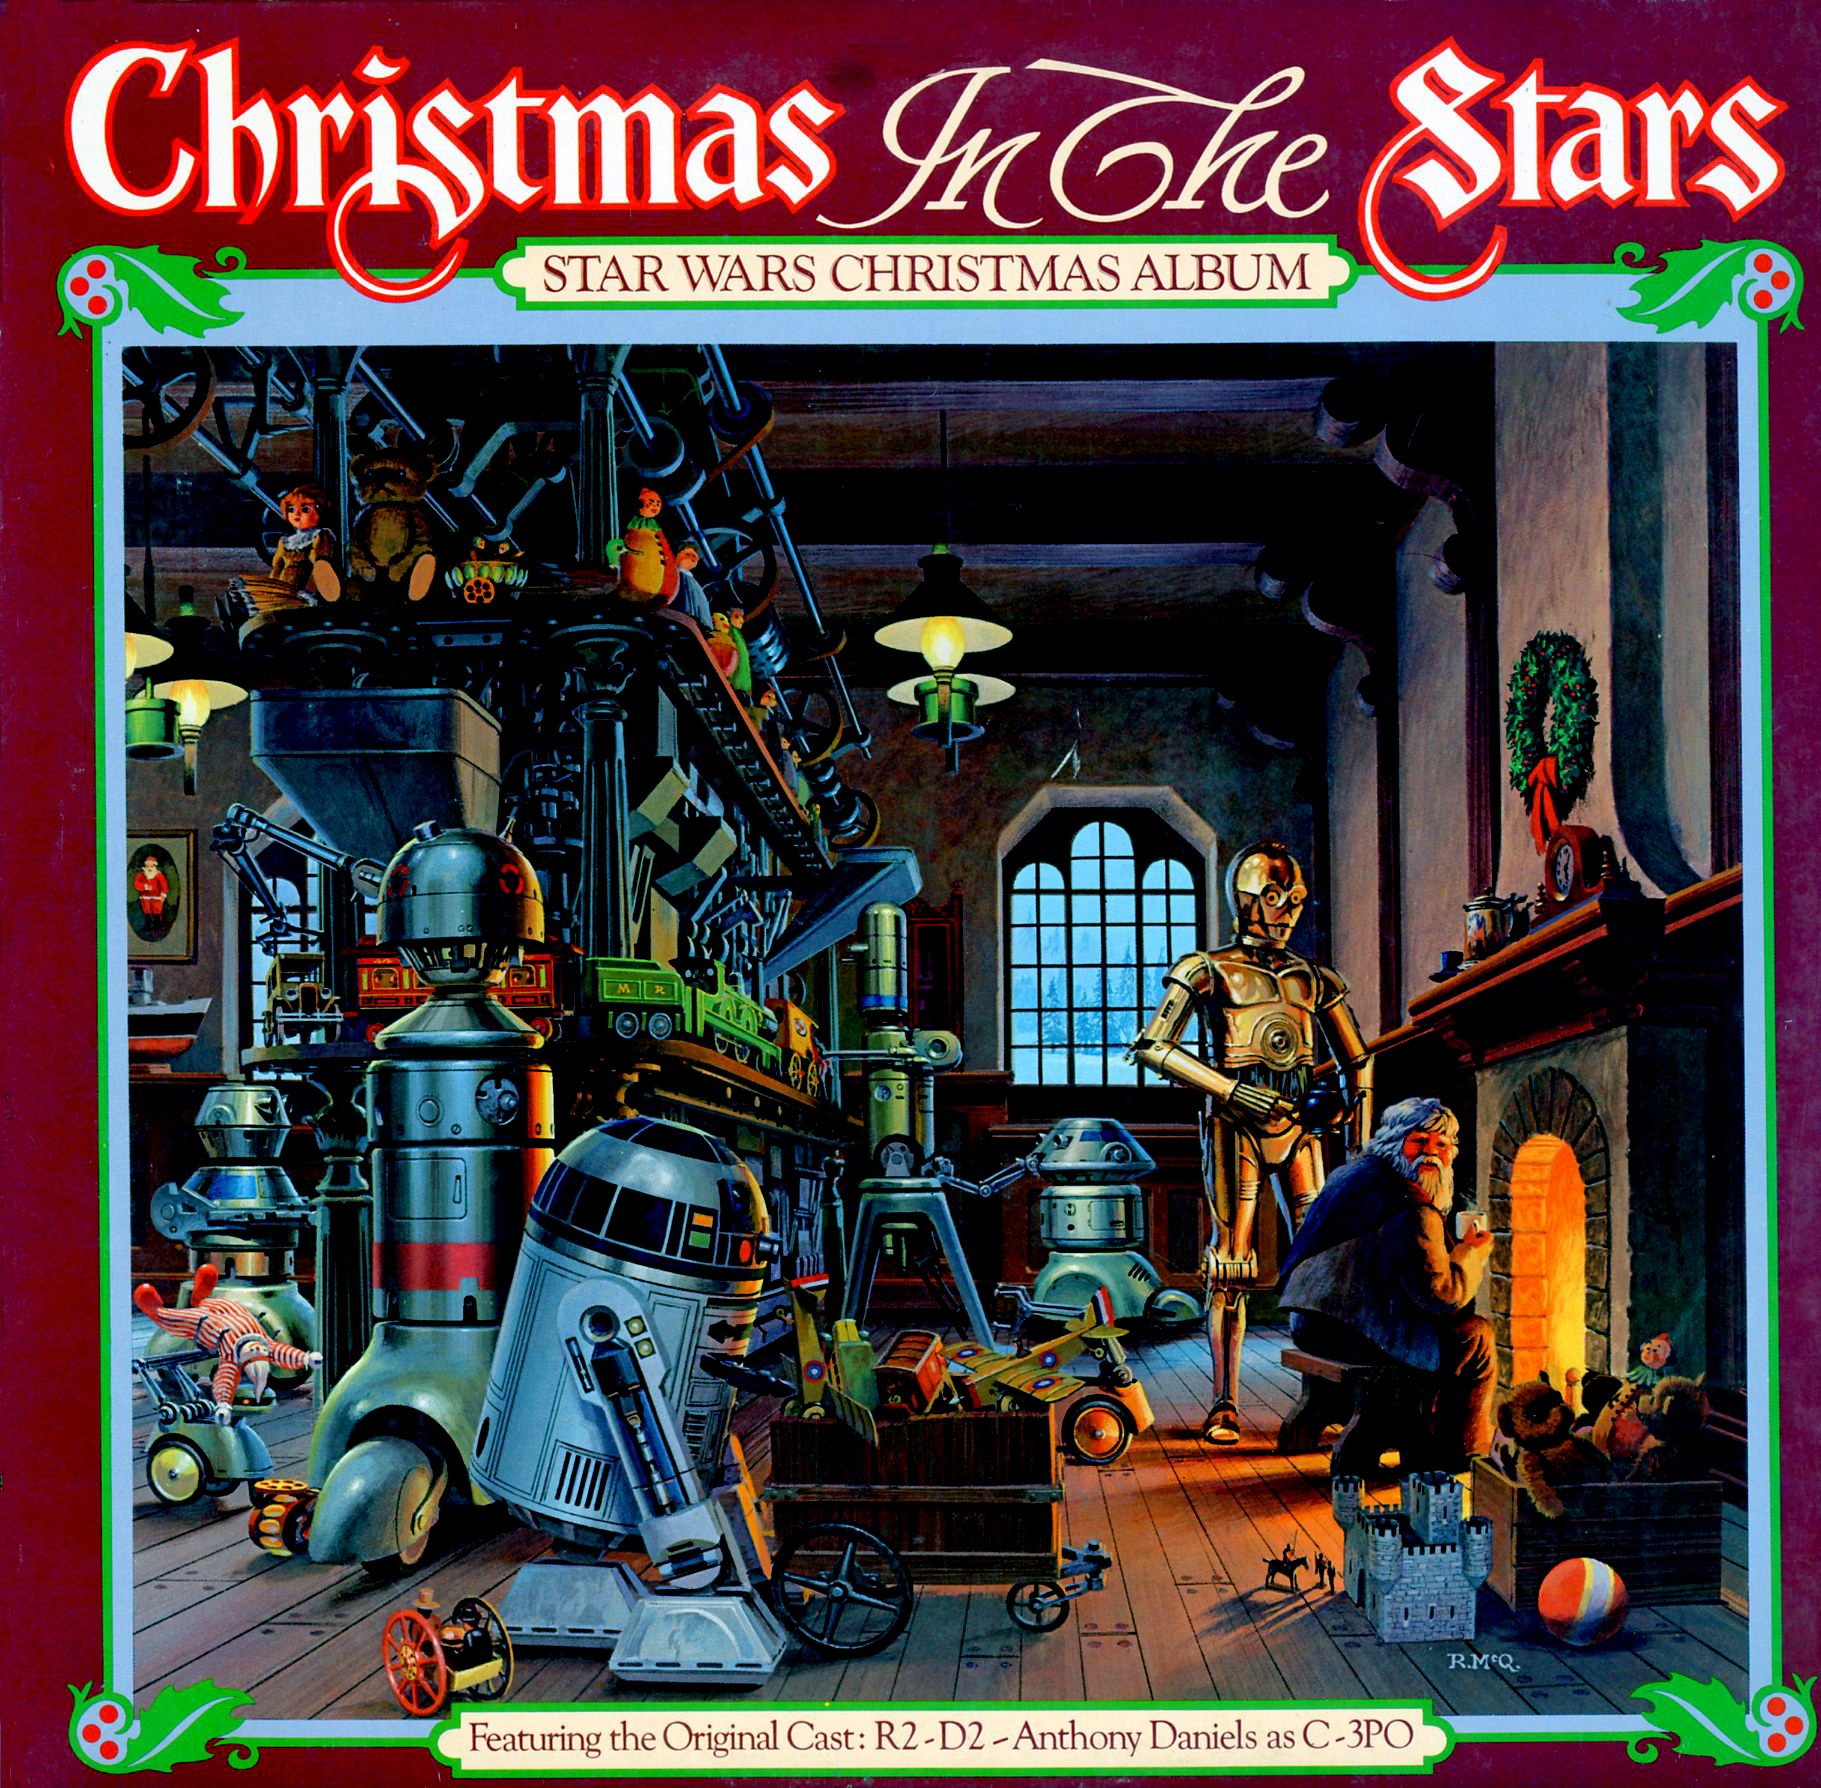 CHRISTMAS IN THE STARS ( NAVIDAD DISCOTECA ) - 1